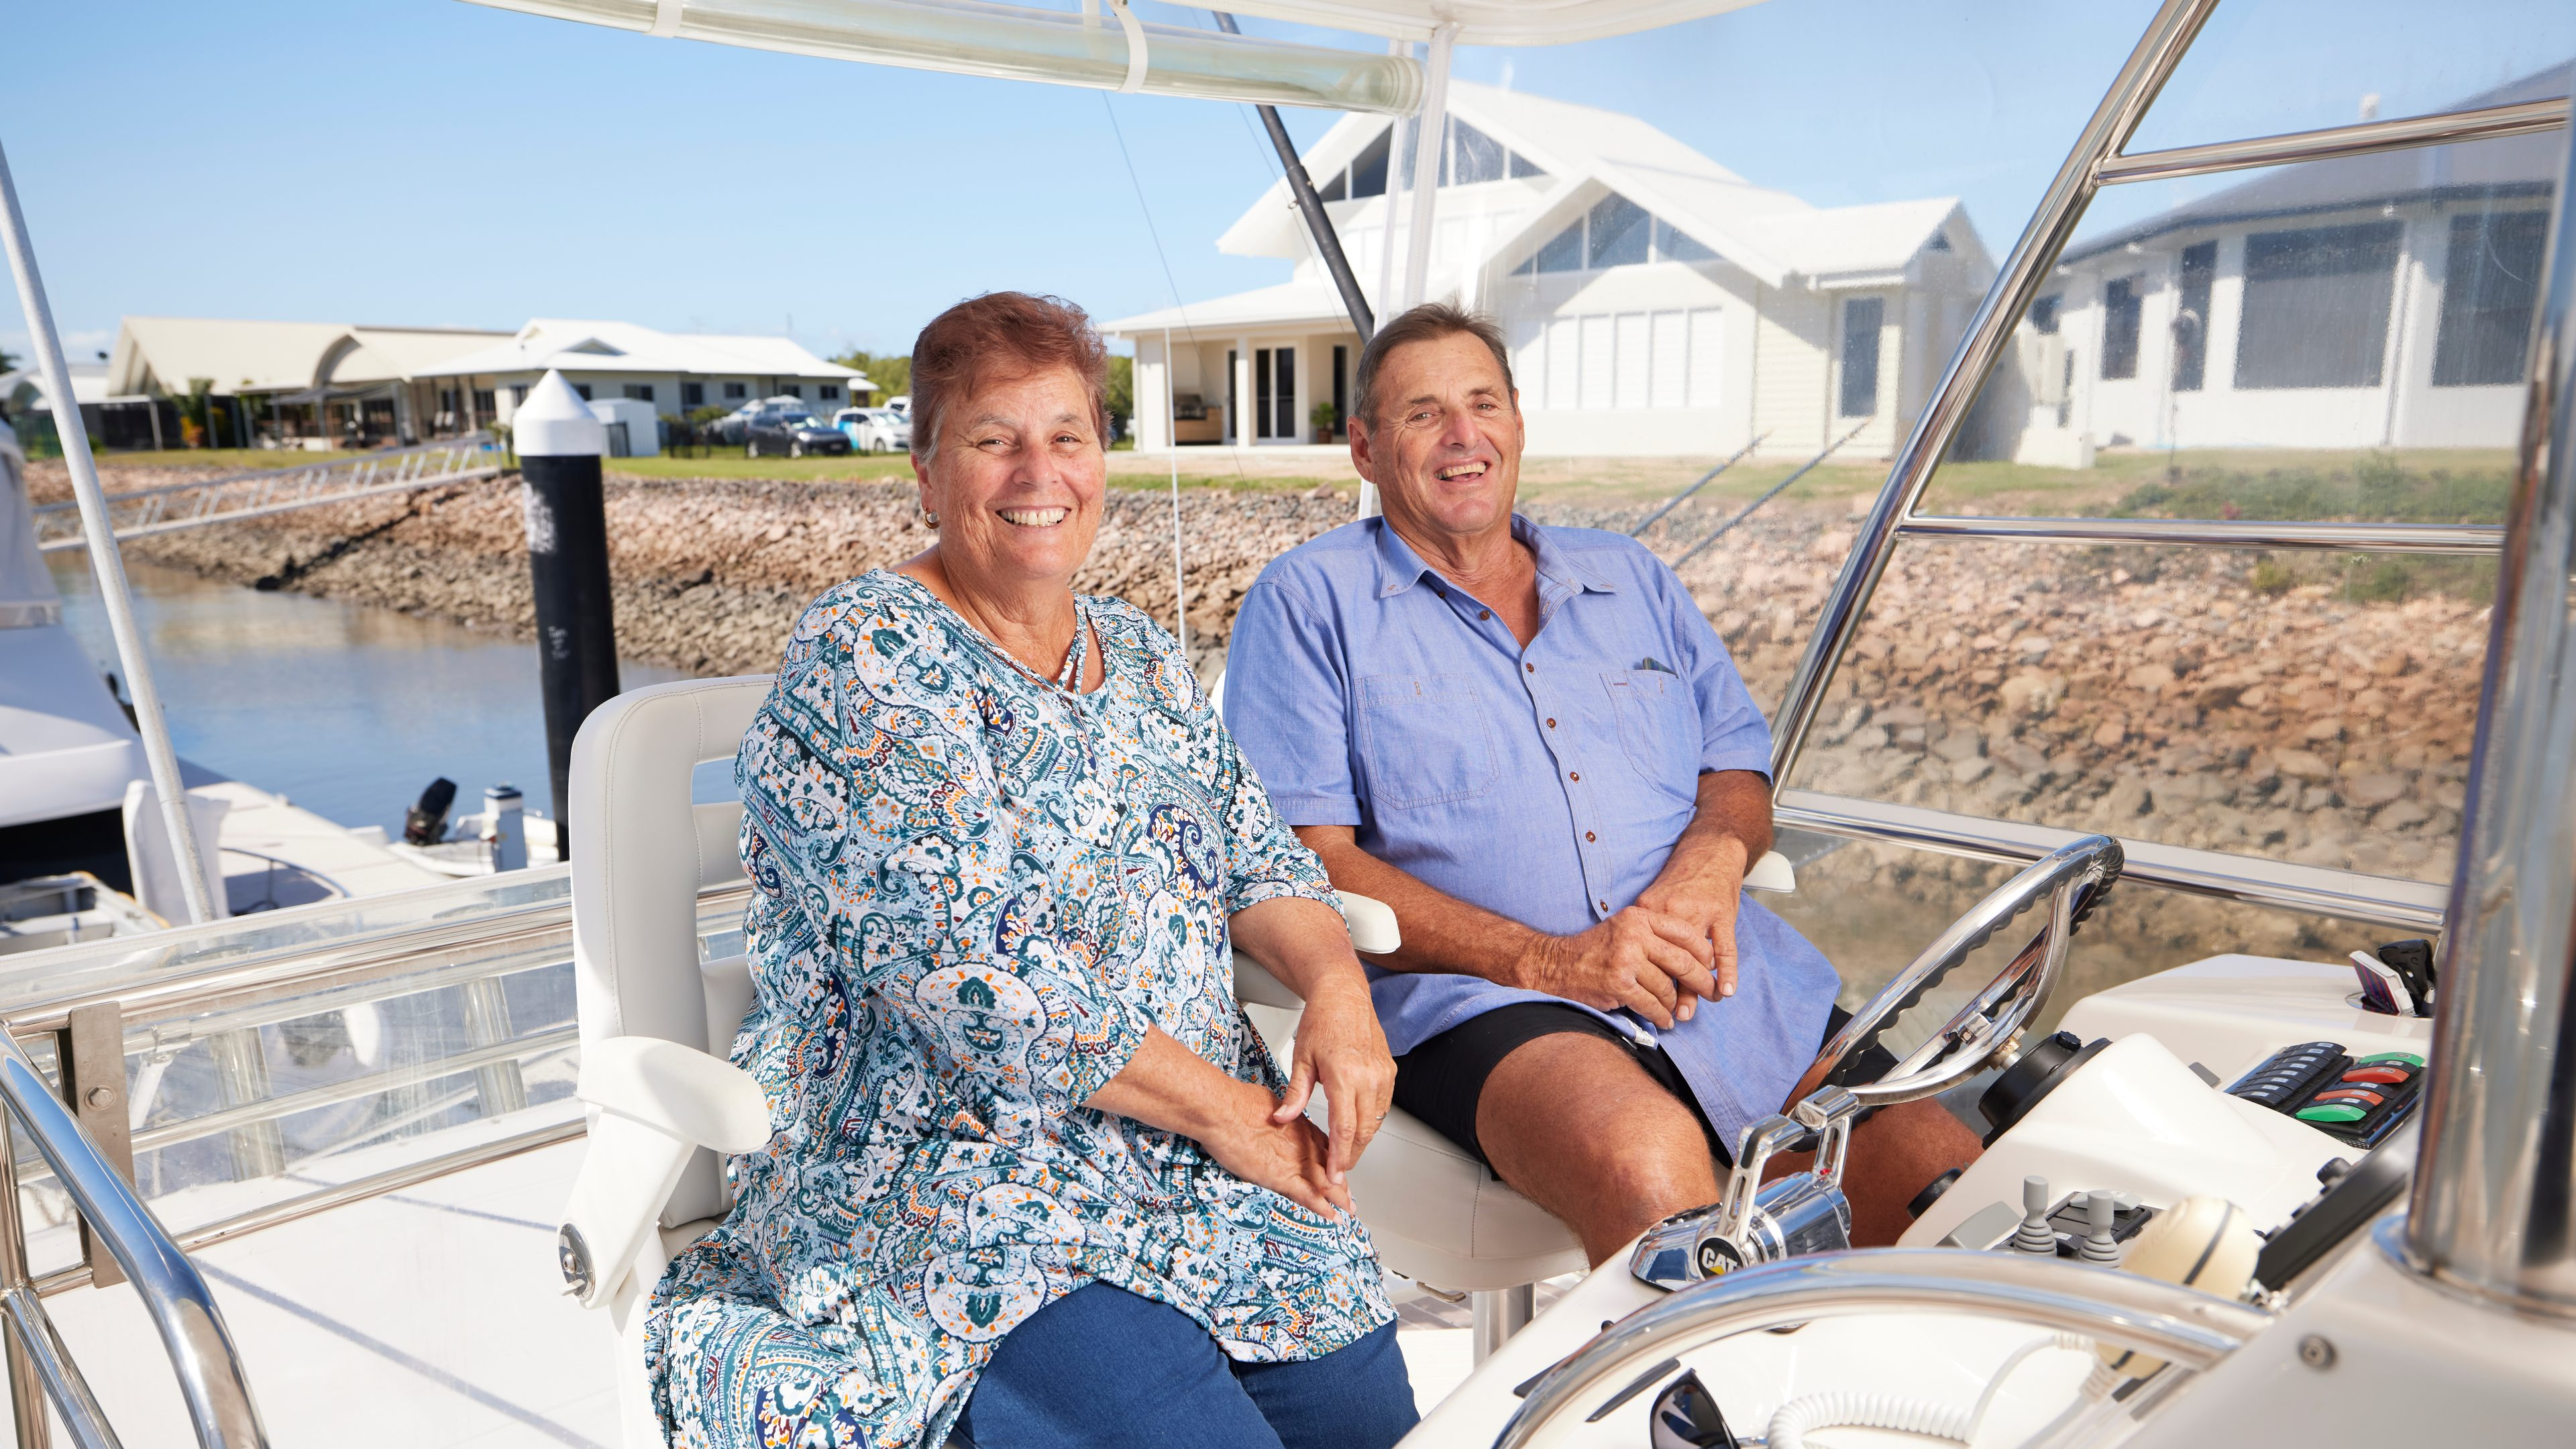 Photography of retired couple on a boat enjoying their financial freedom